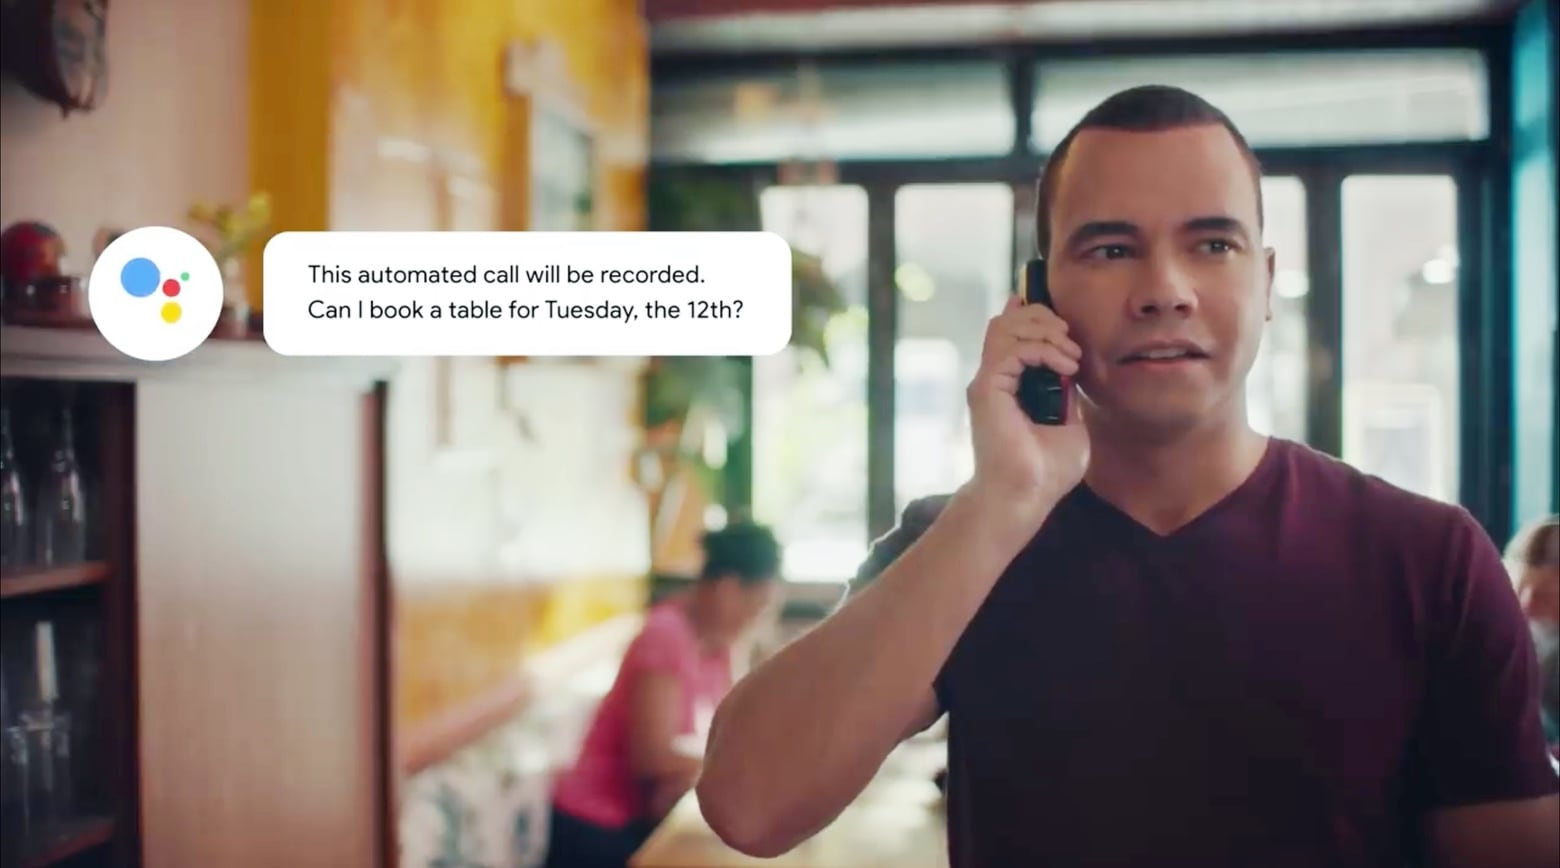 Google Duplex uses an AI to make very realistic phone calls on your behalf.